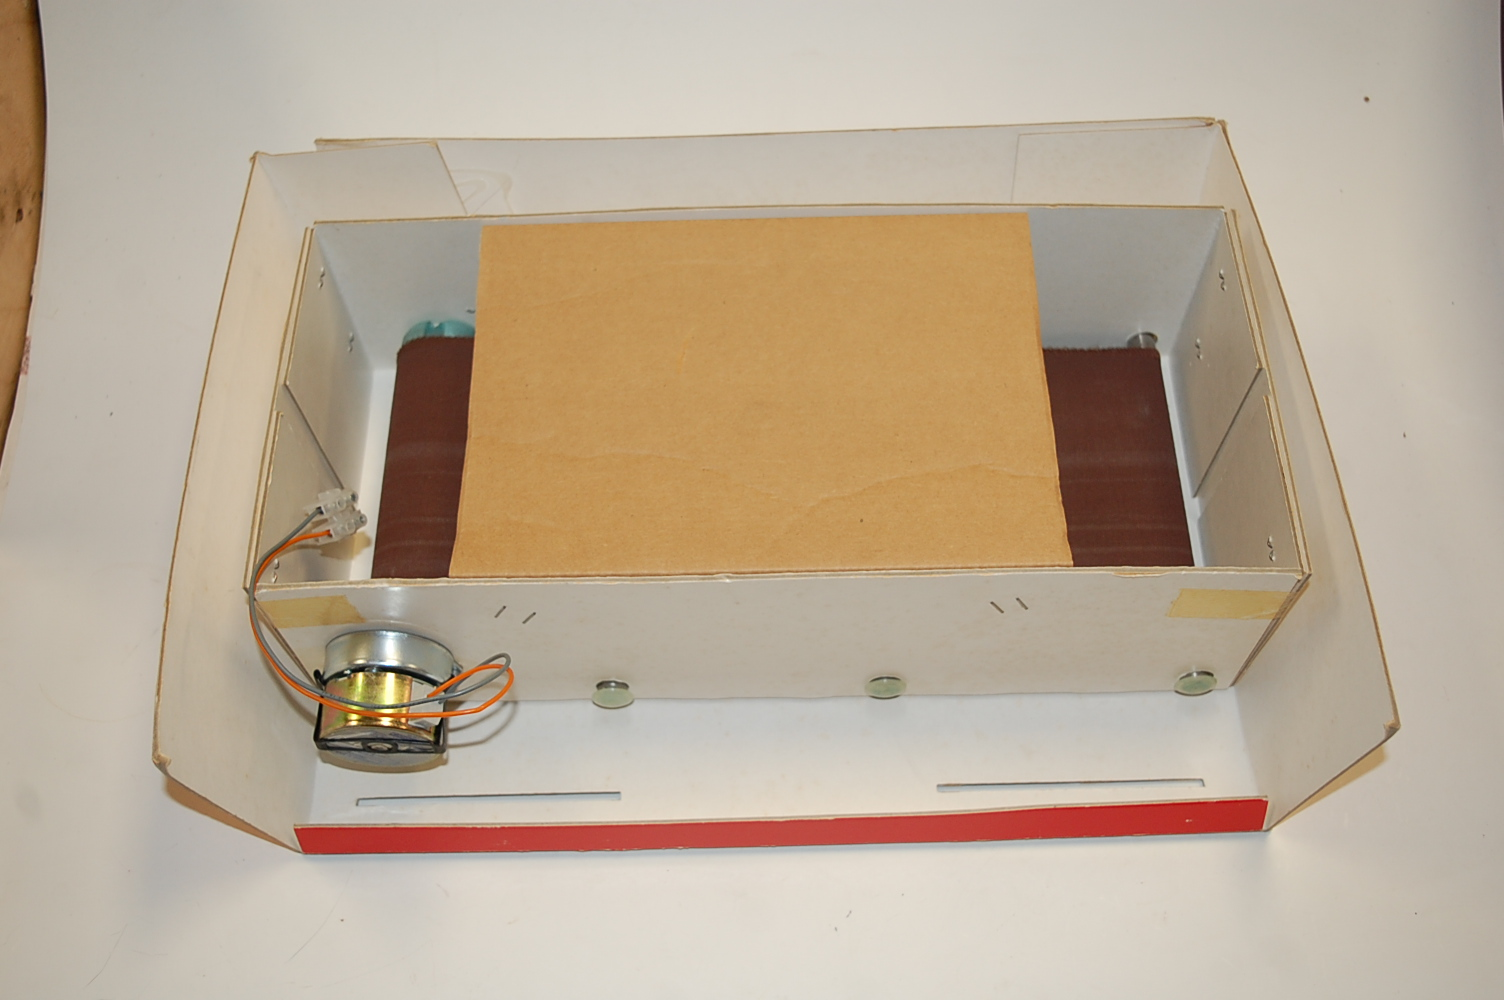 A Britains Power Farm battery operated shop display model of a rolling road, constructed in card - Image 3 of 4